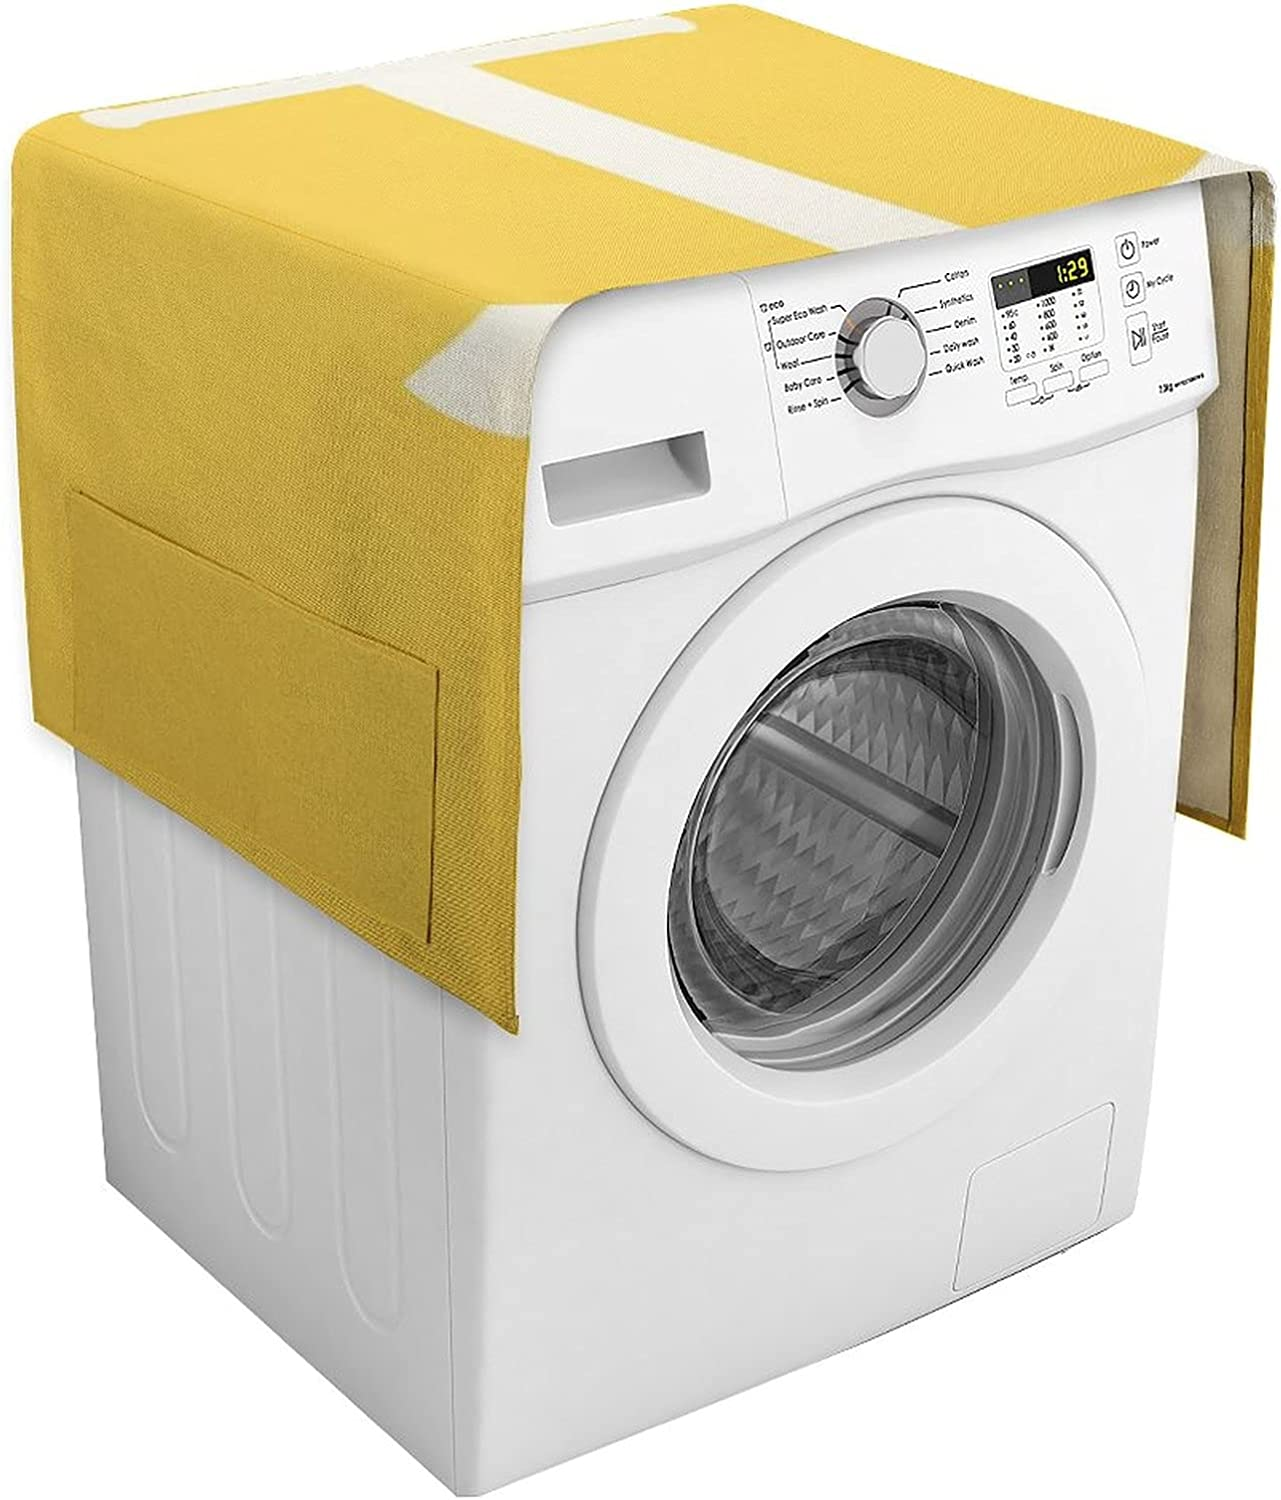 Multi-Purpose Washing Machine Covers Same day shipping Washer Appliance Protector San Diego Mall